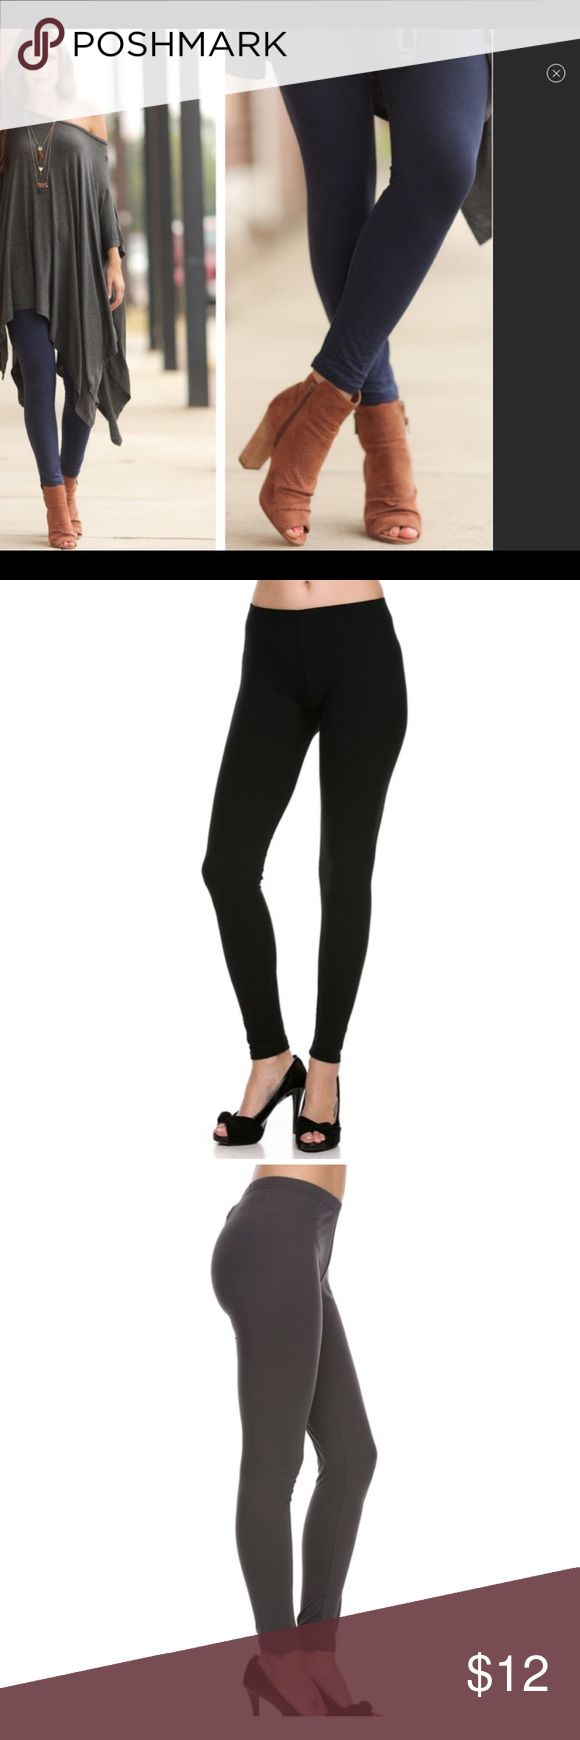 Navy, Black or Charcoal Leggings Boutique item. Brand new.  Brushed Solid Ankle Leggings in navy,Black or Charcoal  Cute and super soft brushed legging, featured in a very soft brushed peach skin fabric.  Paneled elastic waistband 92% Polyester, 8% Spandex  One size fits sizes 2-12  Price firm- only bundle discount available Pants Leggings